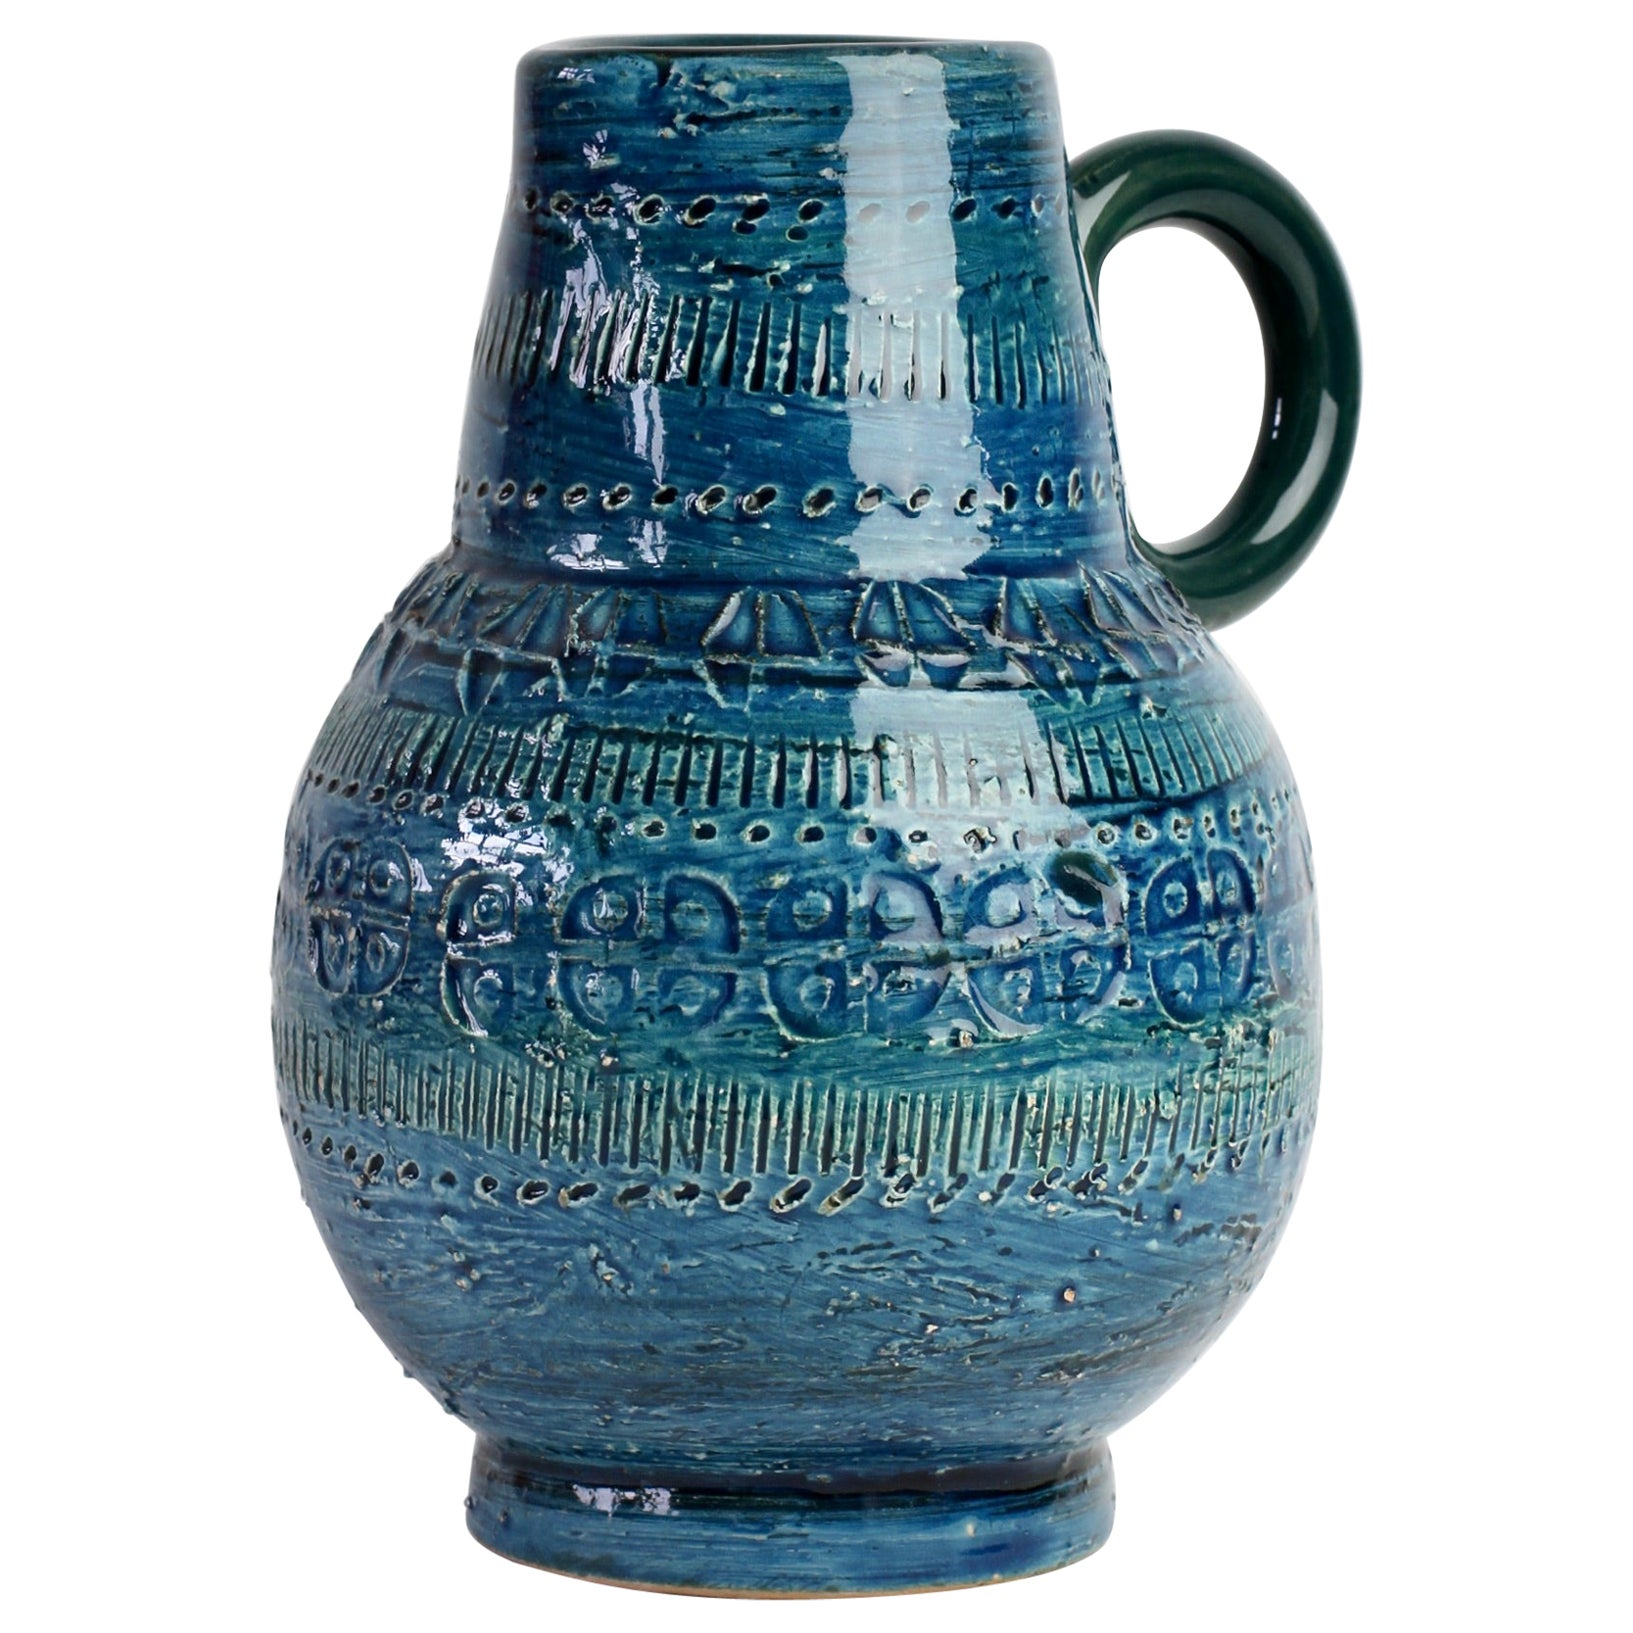 Italian Ceramic Rhimini Blue Vase by Aldo Londi for Bitossi, circa 1960s